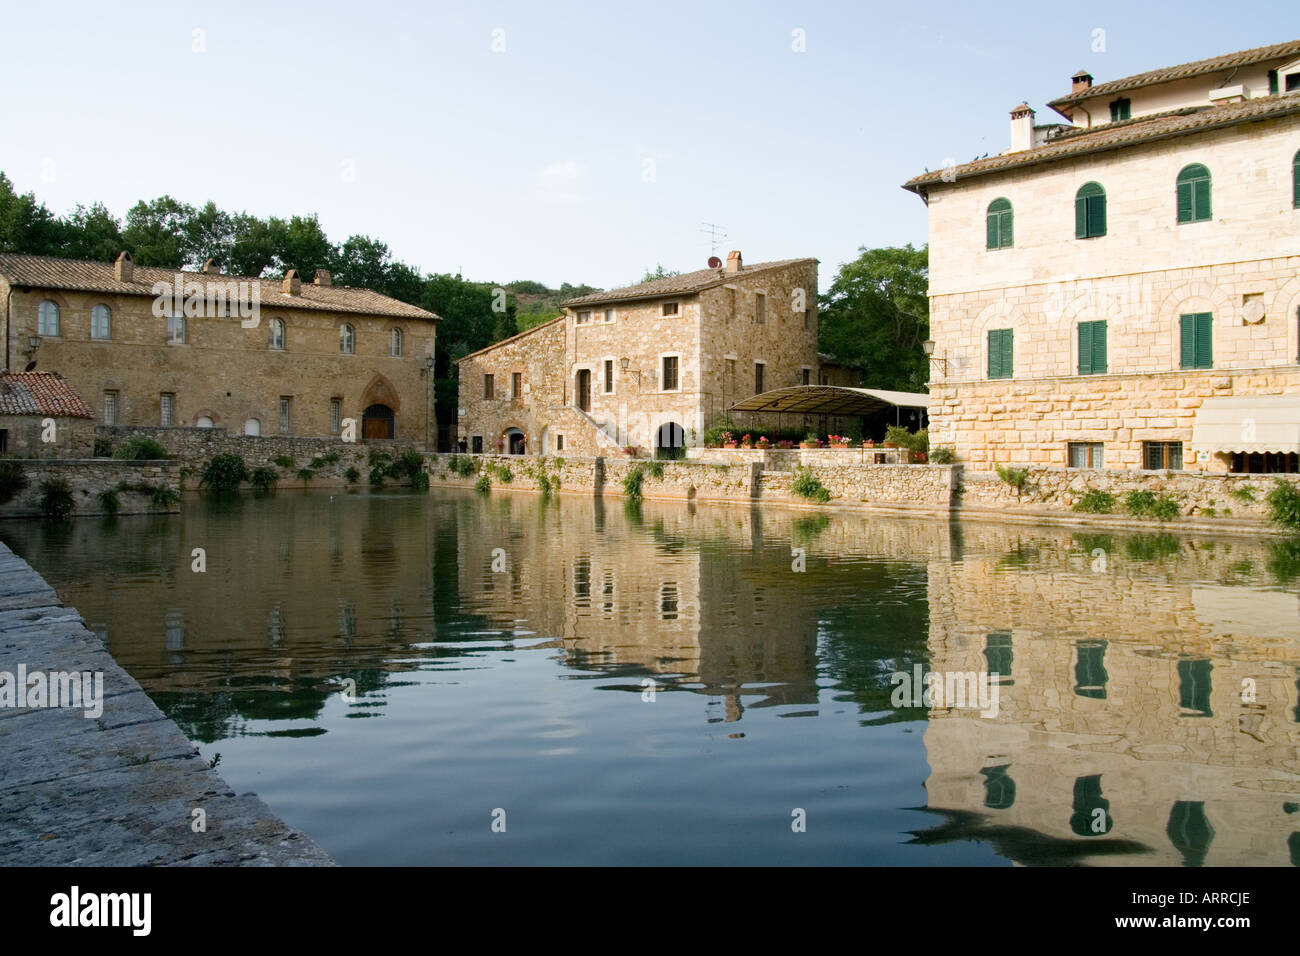 Bagno Vignoni Tuscany Italy The Renaissance Piscina Hot Springs Or